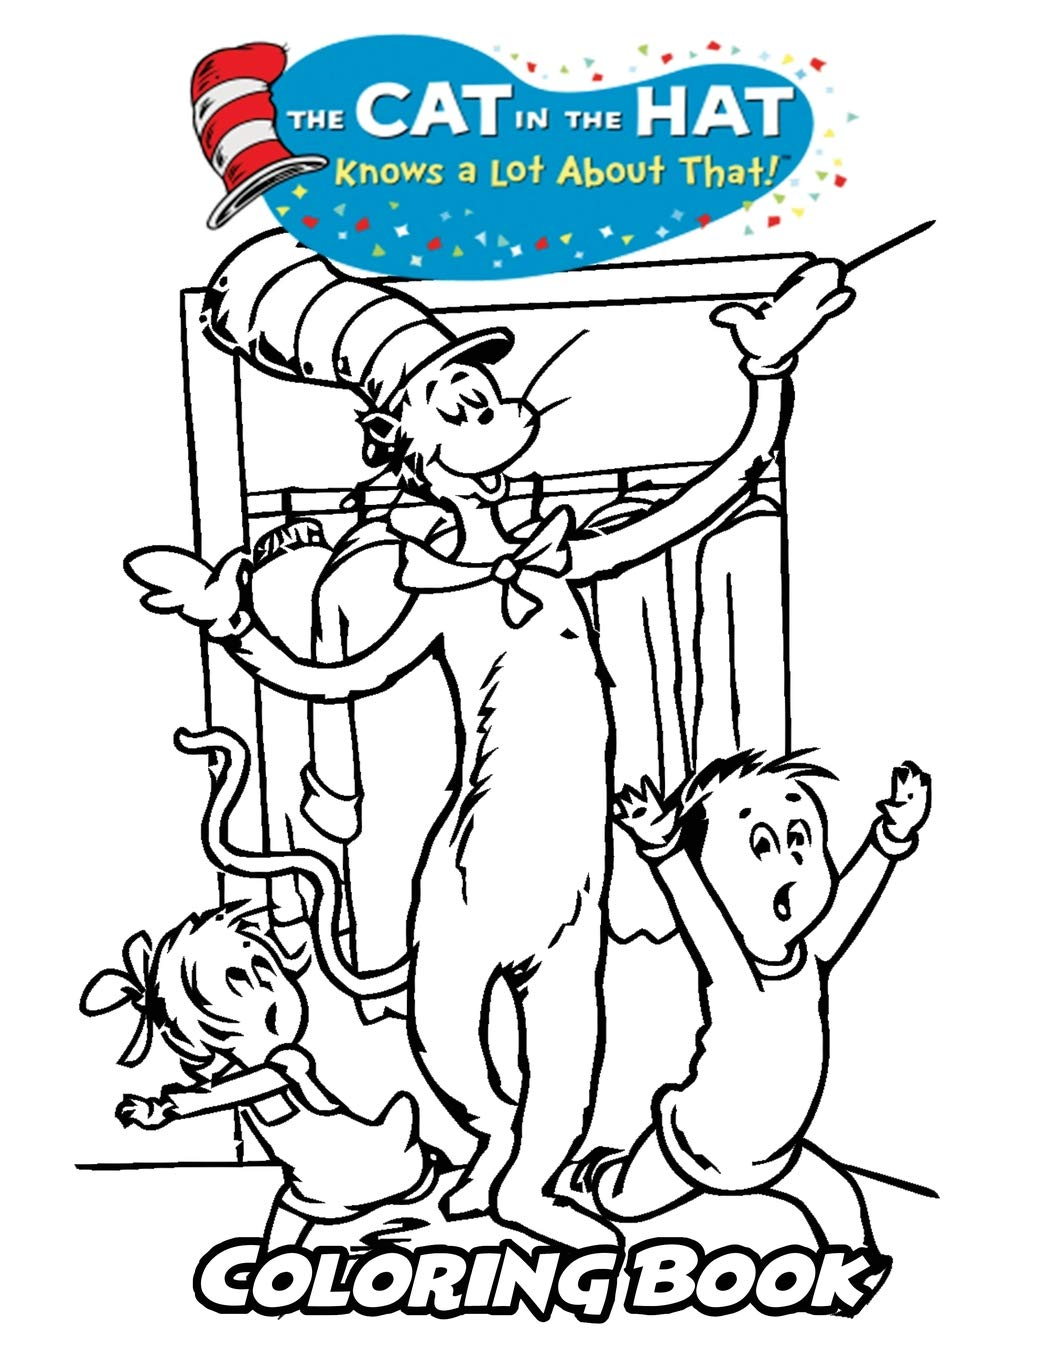 Amazon Com The Cat In The Hat Knows A Lot About That Coloring Book